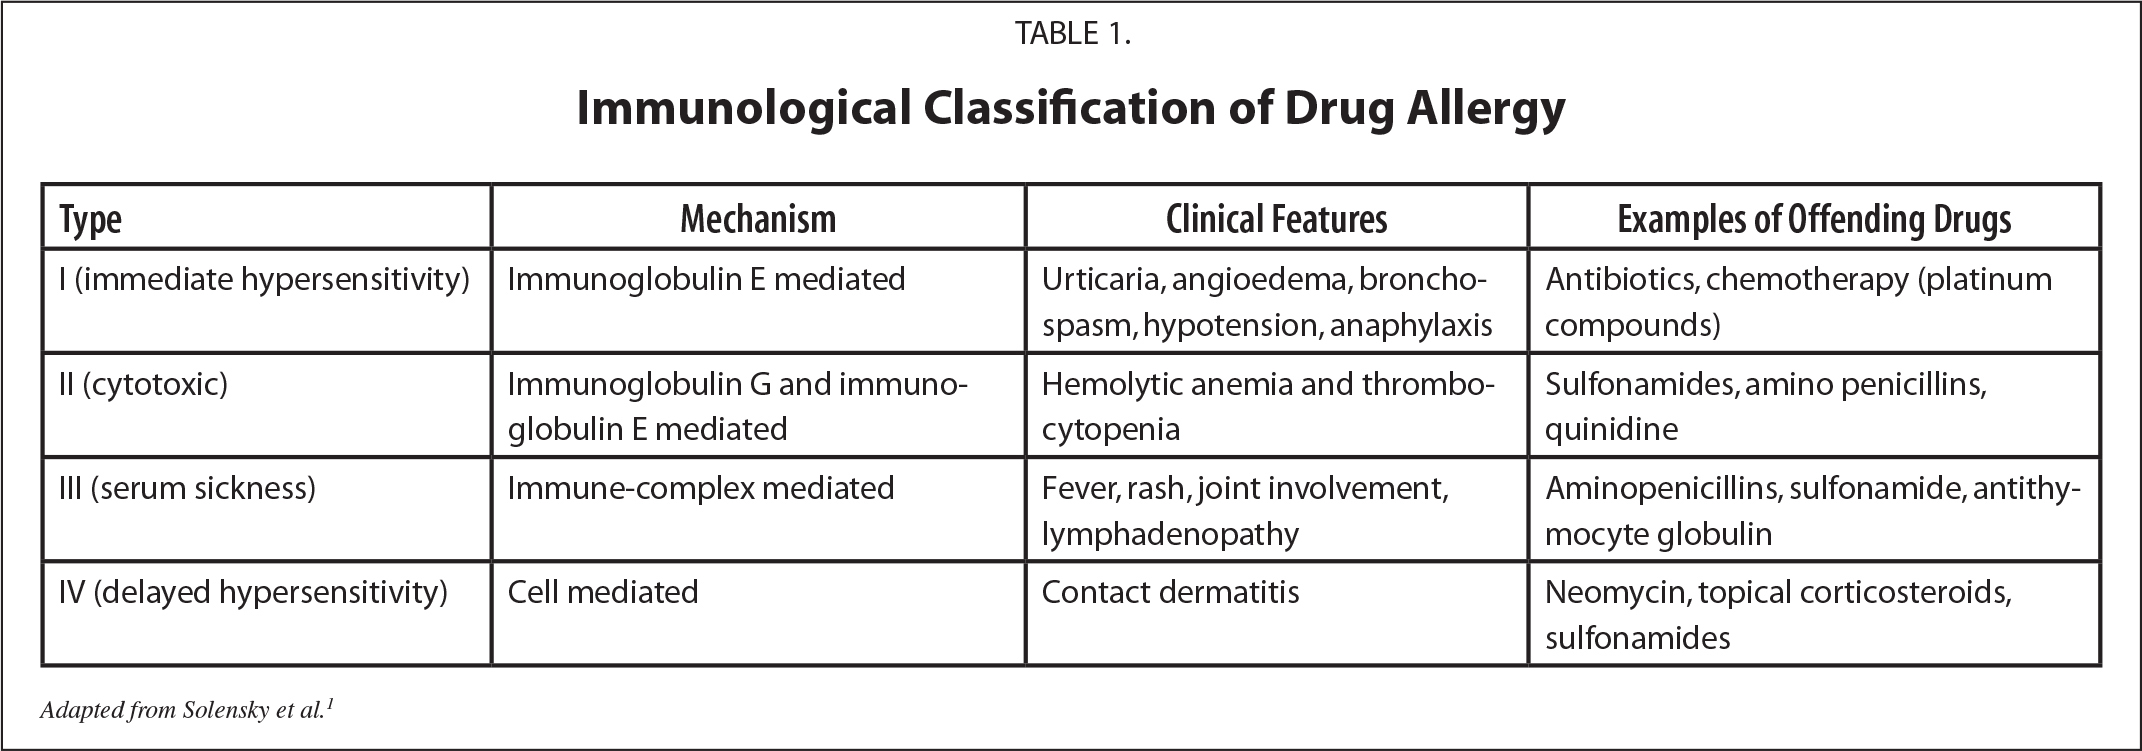 Immunological Classification of Drug Allergy